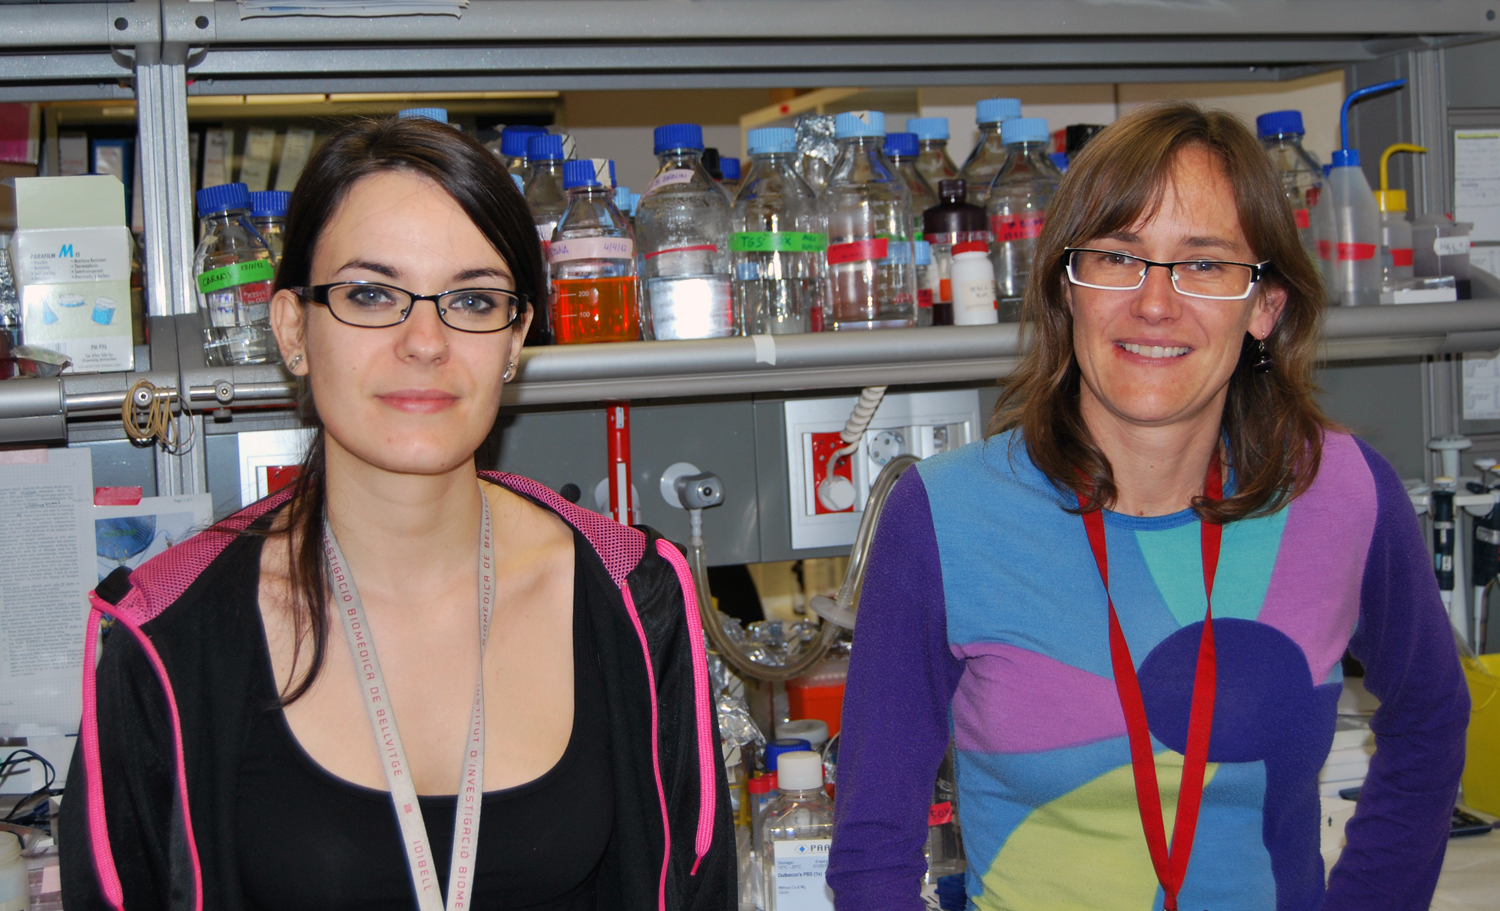 foto Left: Marta Palafox, first author. Right: Eva Gonzlez-Surez, coordinator of the study